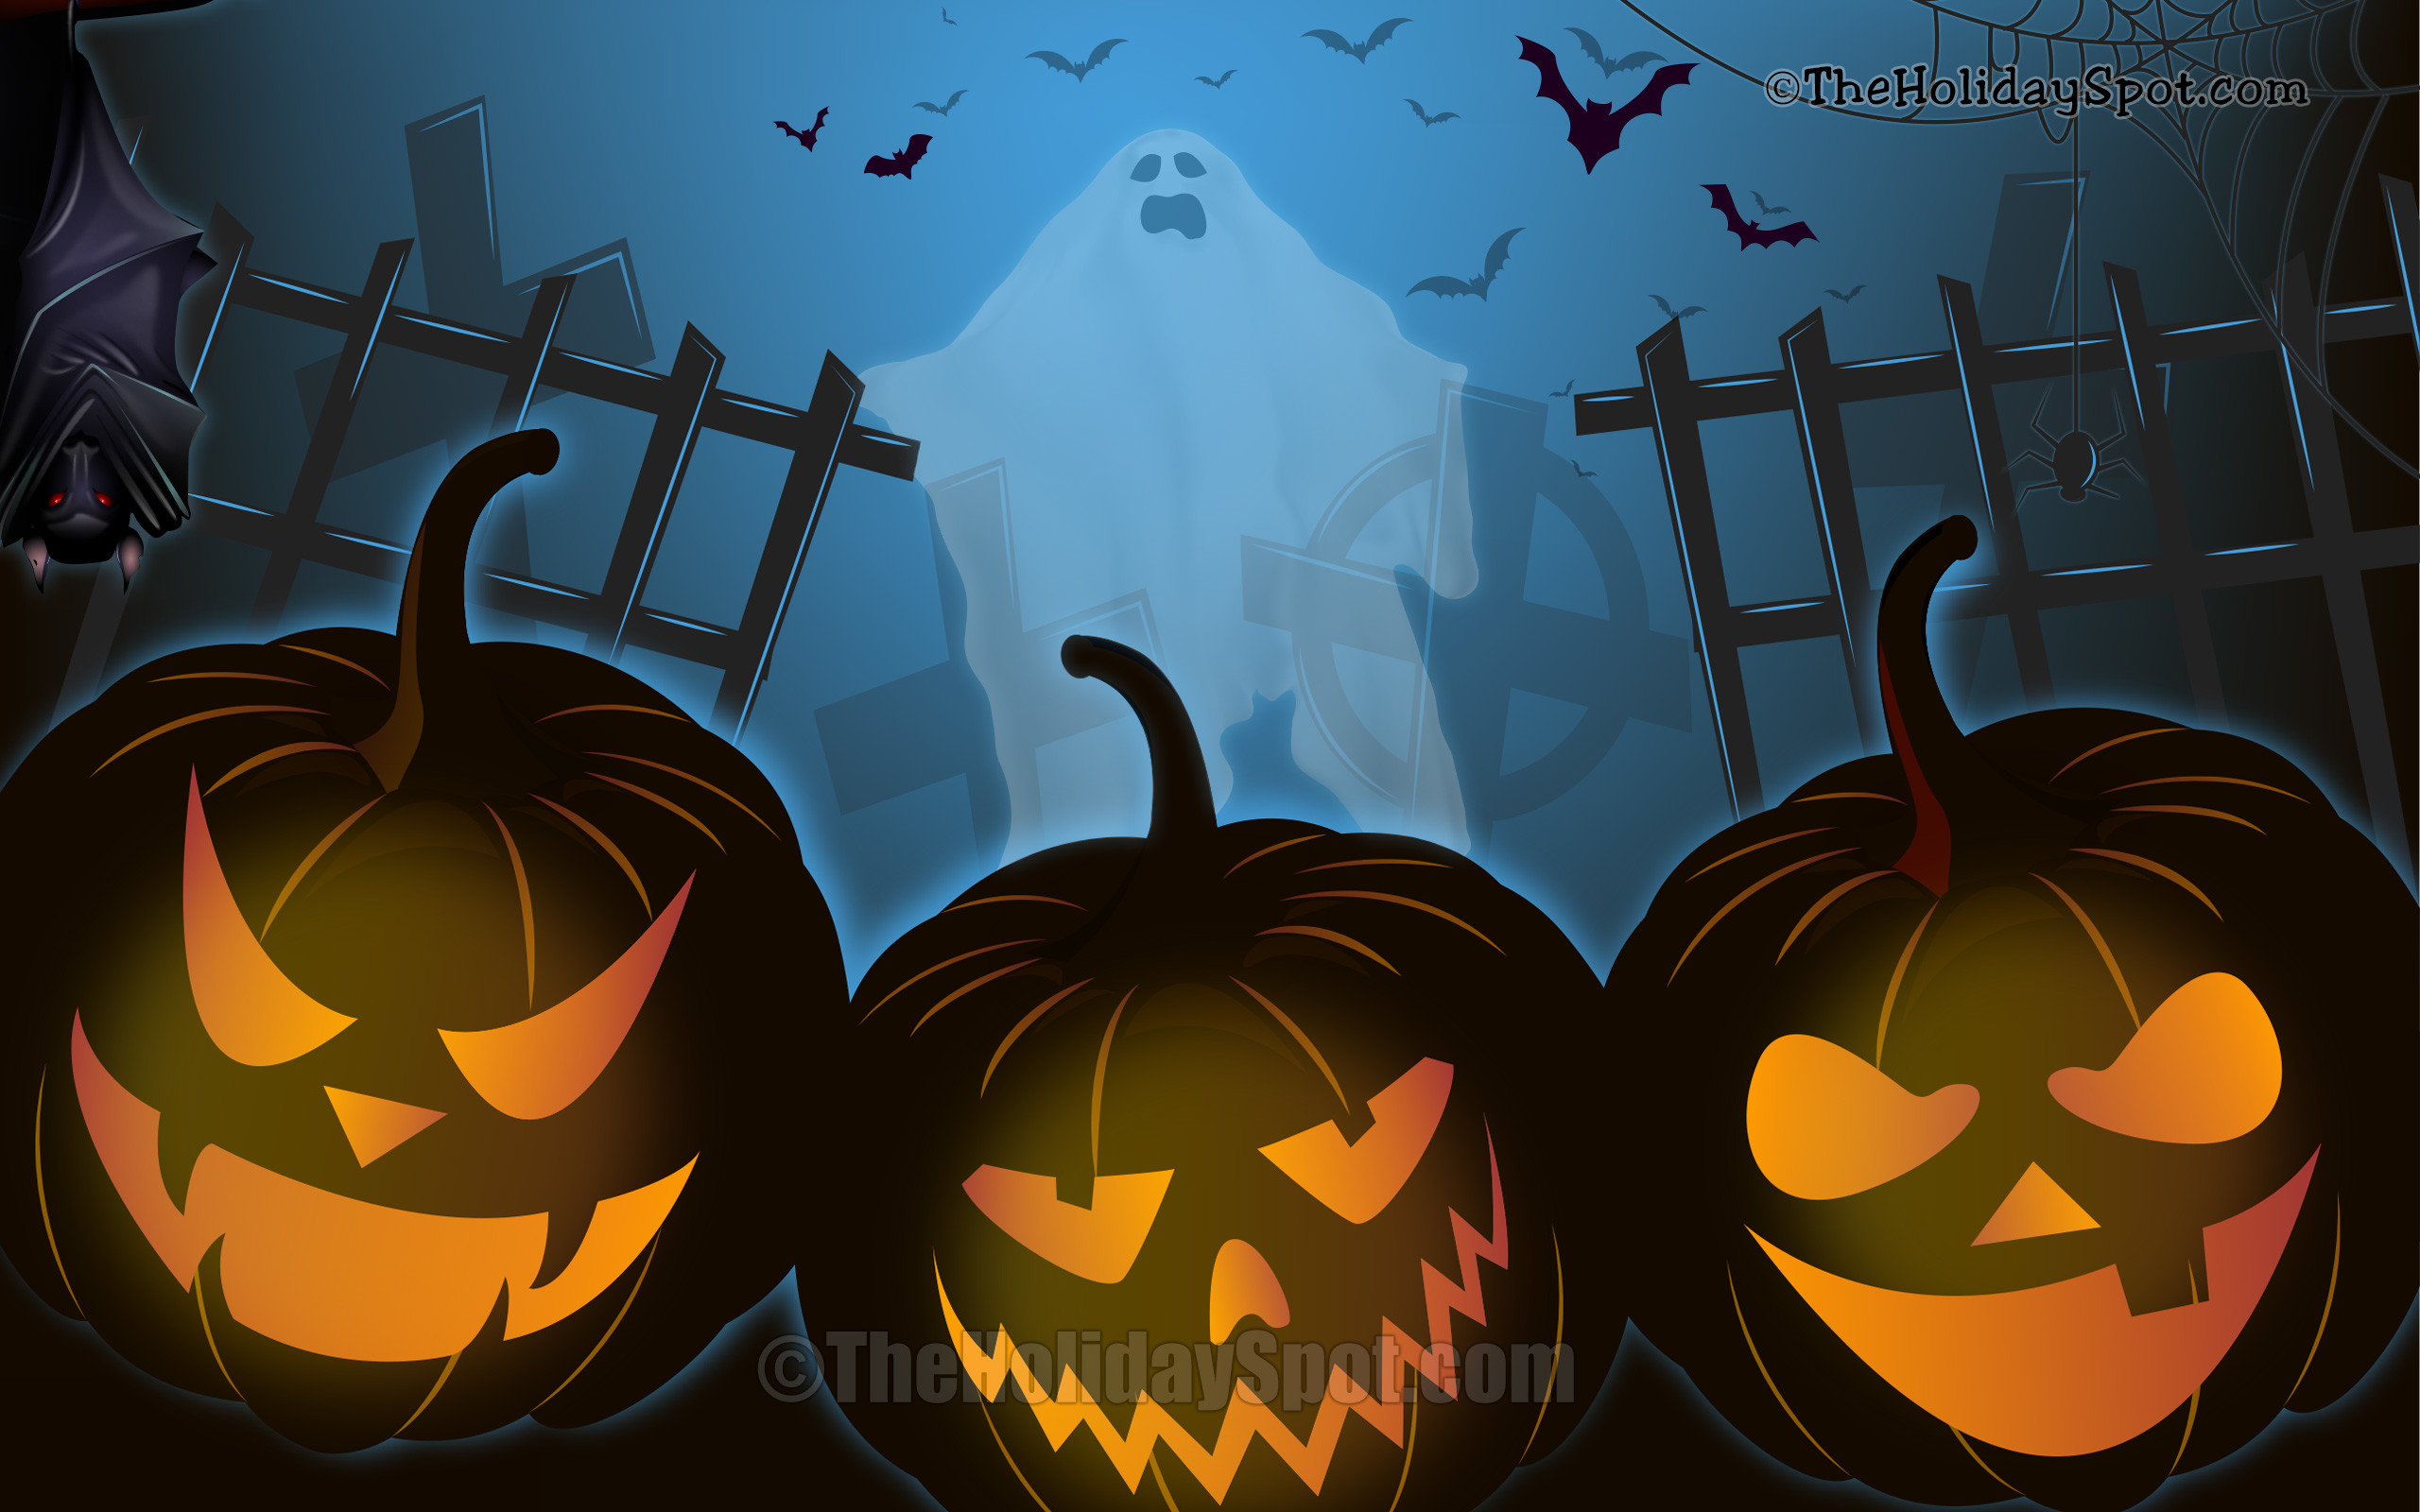 Res: 2560x1600, Wallpaper - Halloween Night with bat, pumpkins and ghost